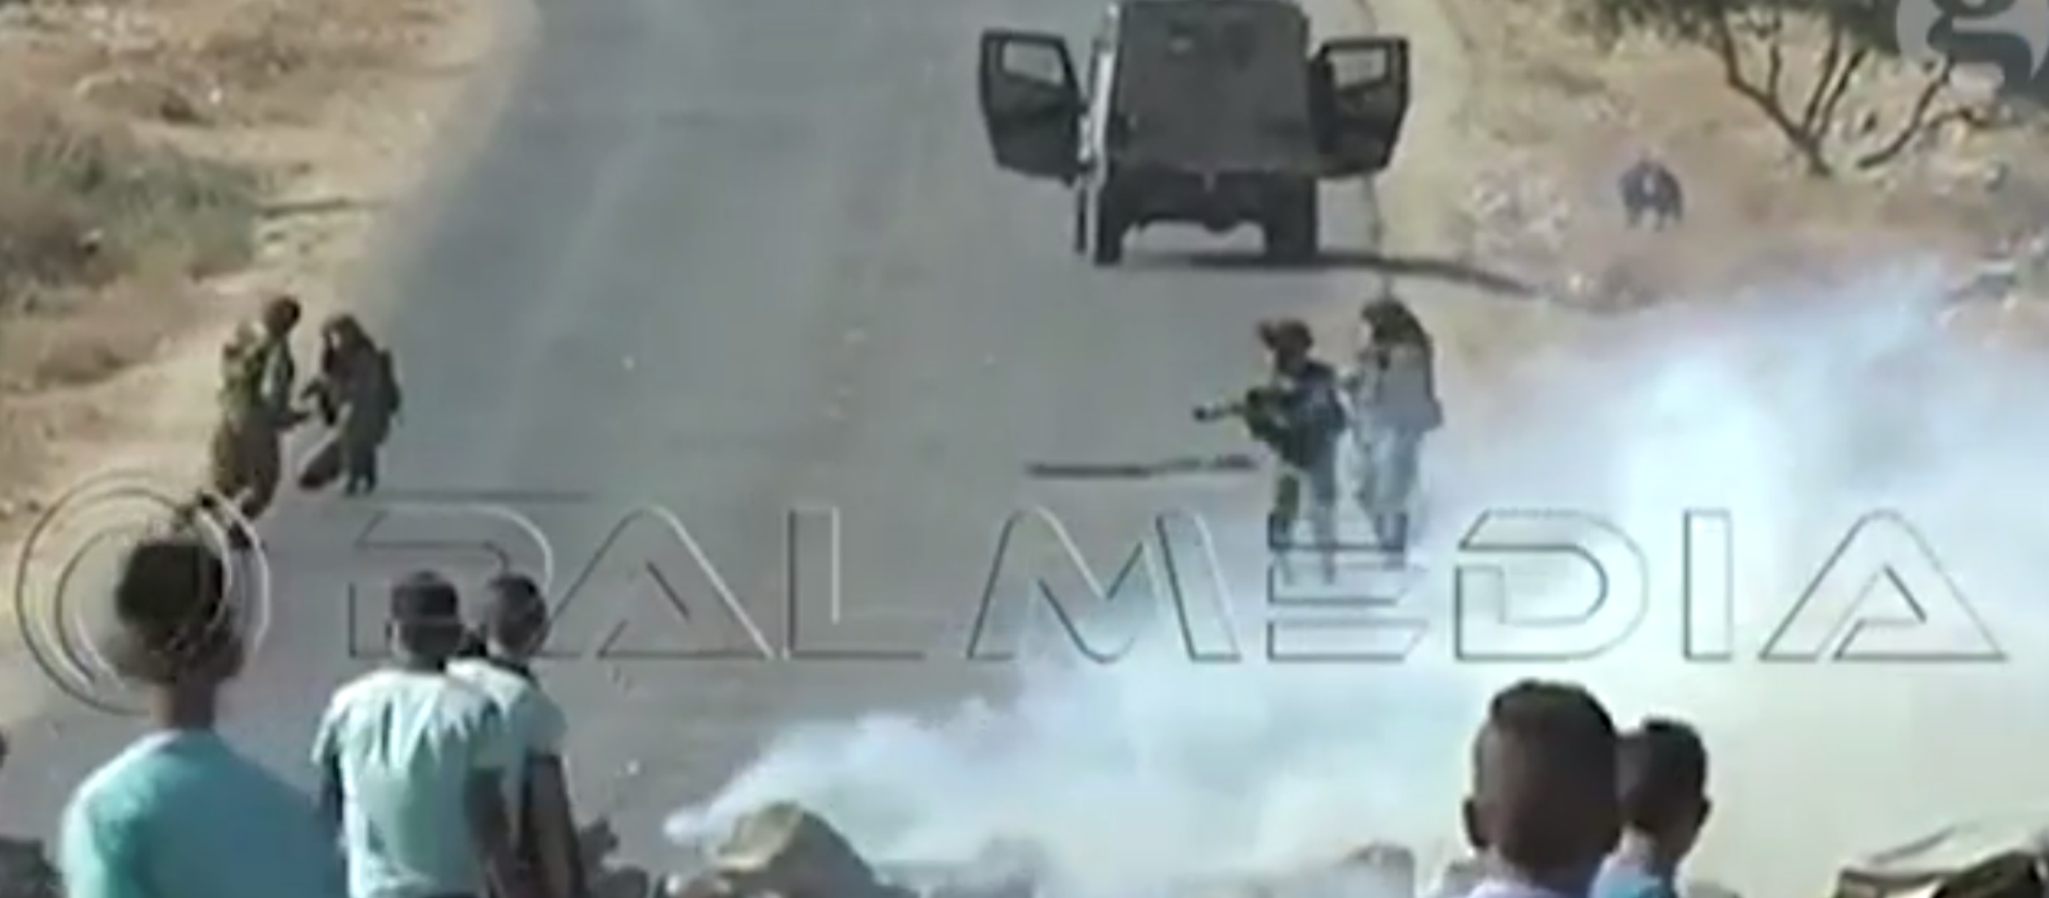 A military vehicle chases down Bernardi, who, knelt at right, attempts to pick up his camera.